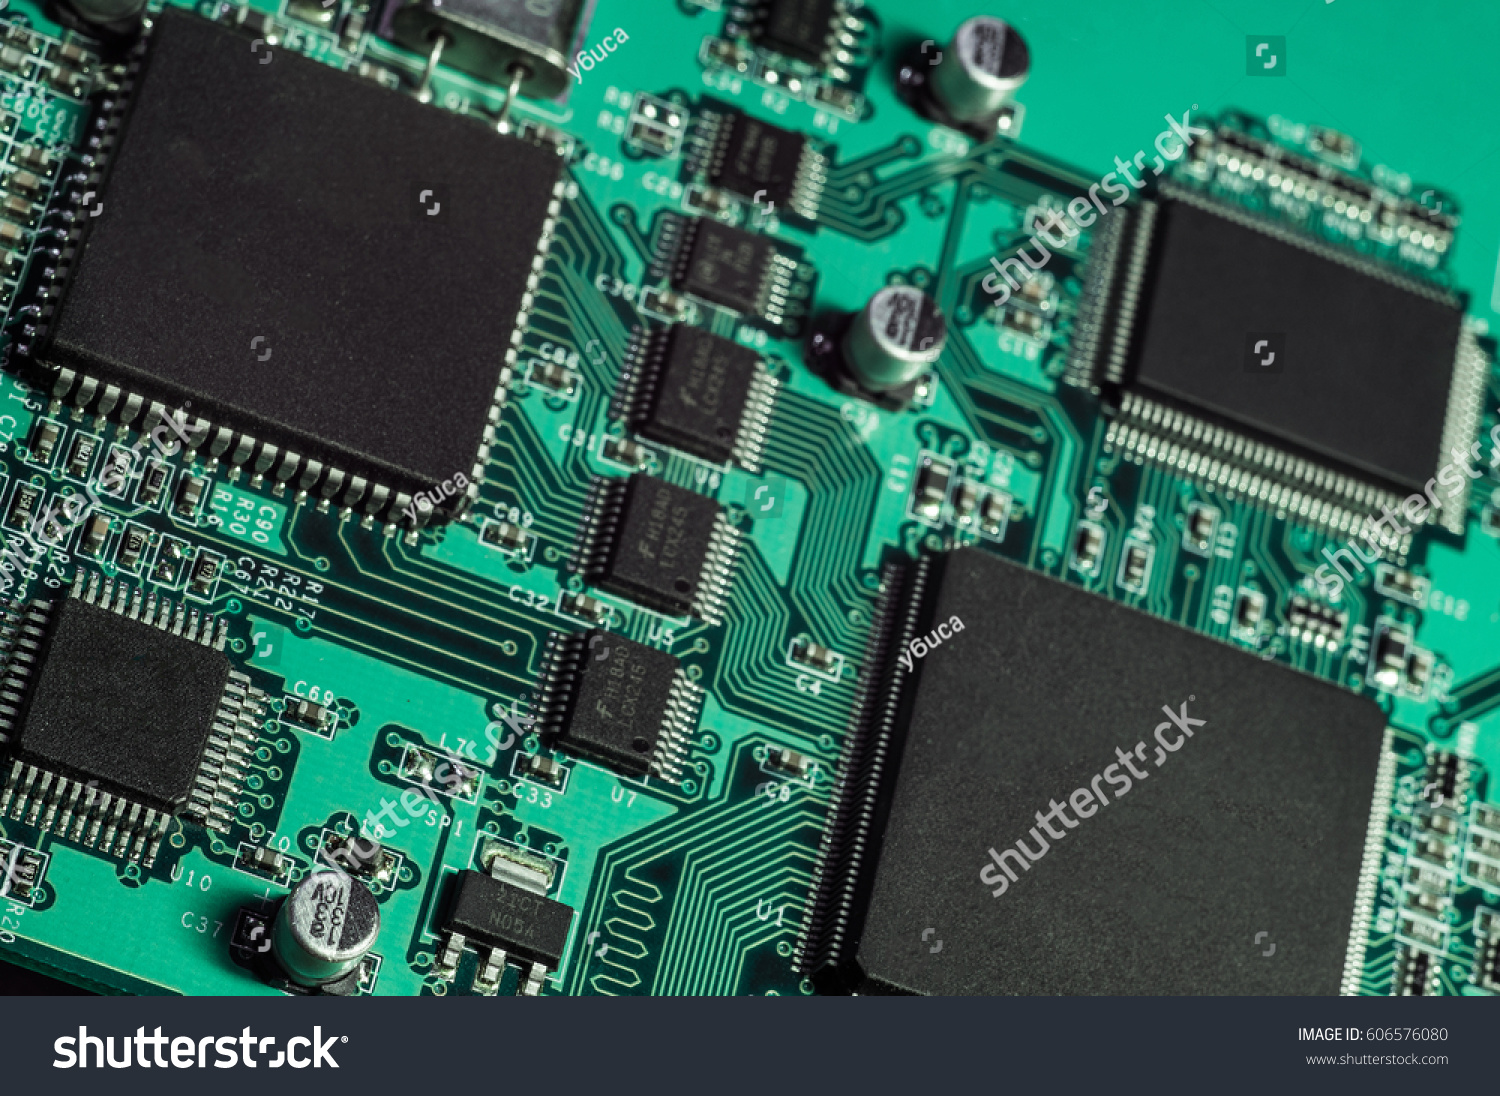 Sata And Ata Hard Disk Connector Close Up Image Ez Canvas Printed Circuit Board Stock Photo 5153818 Shutterstock